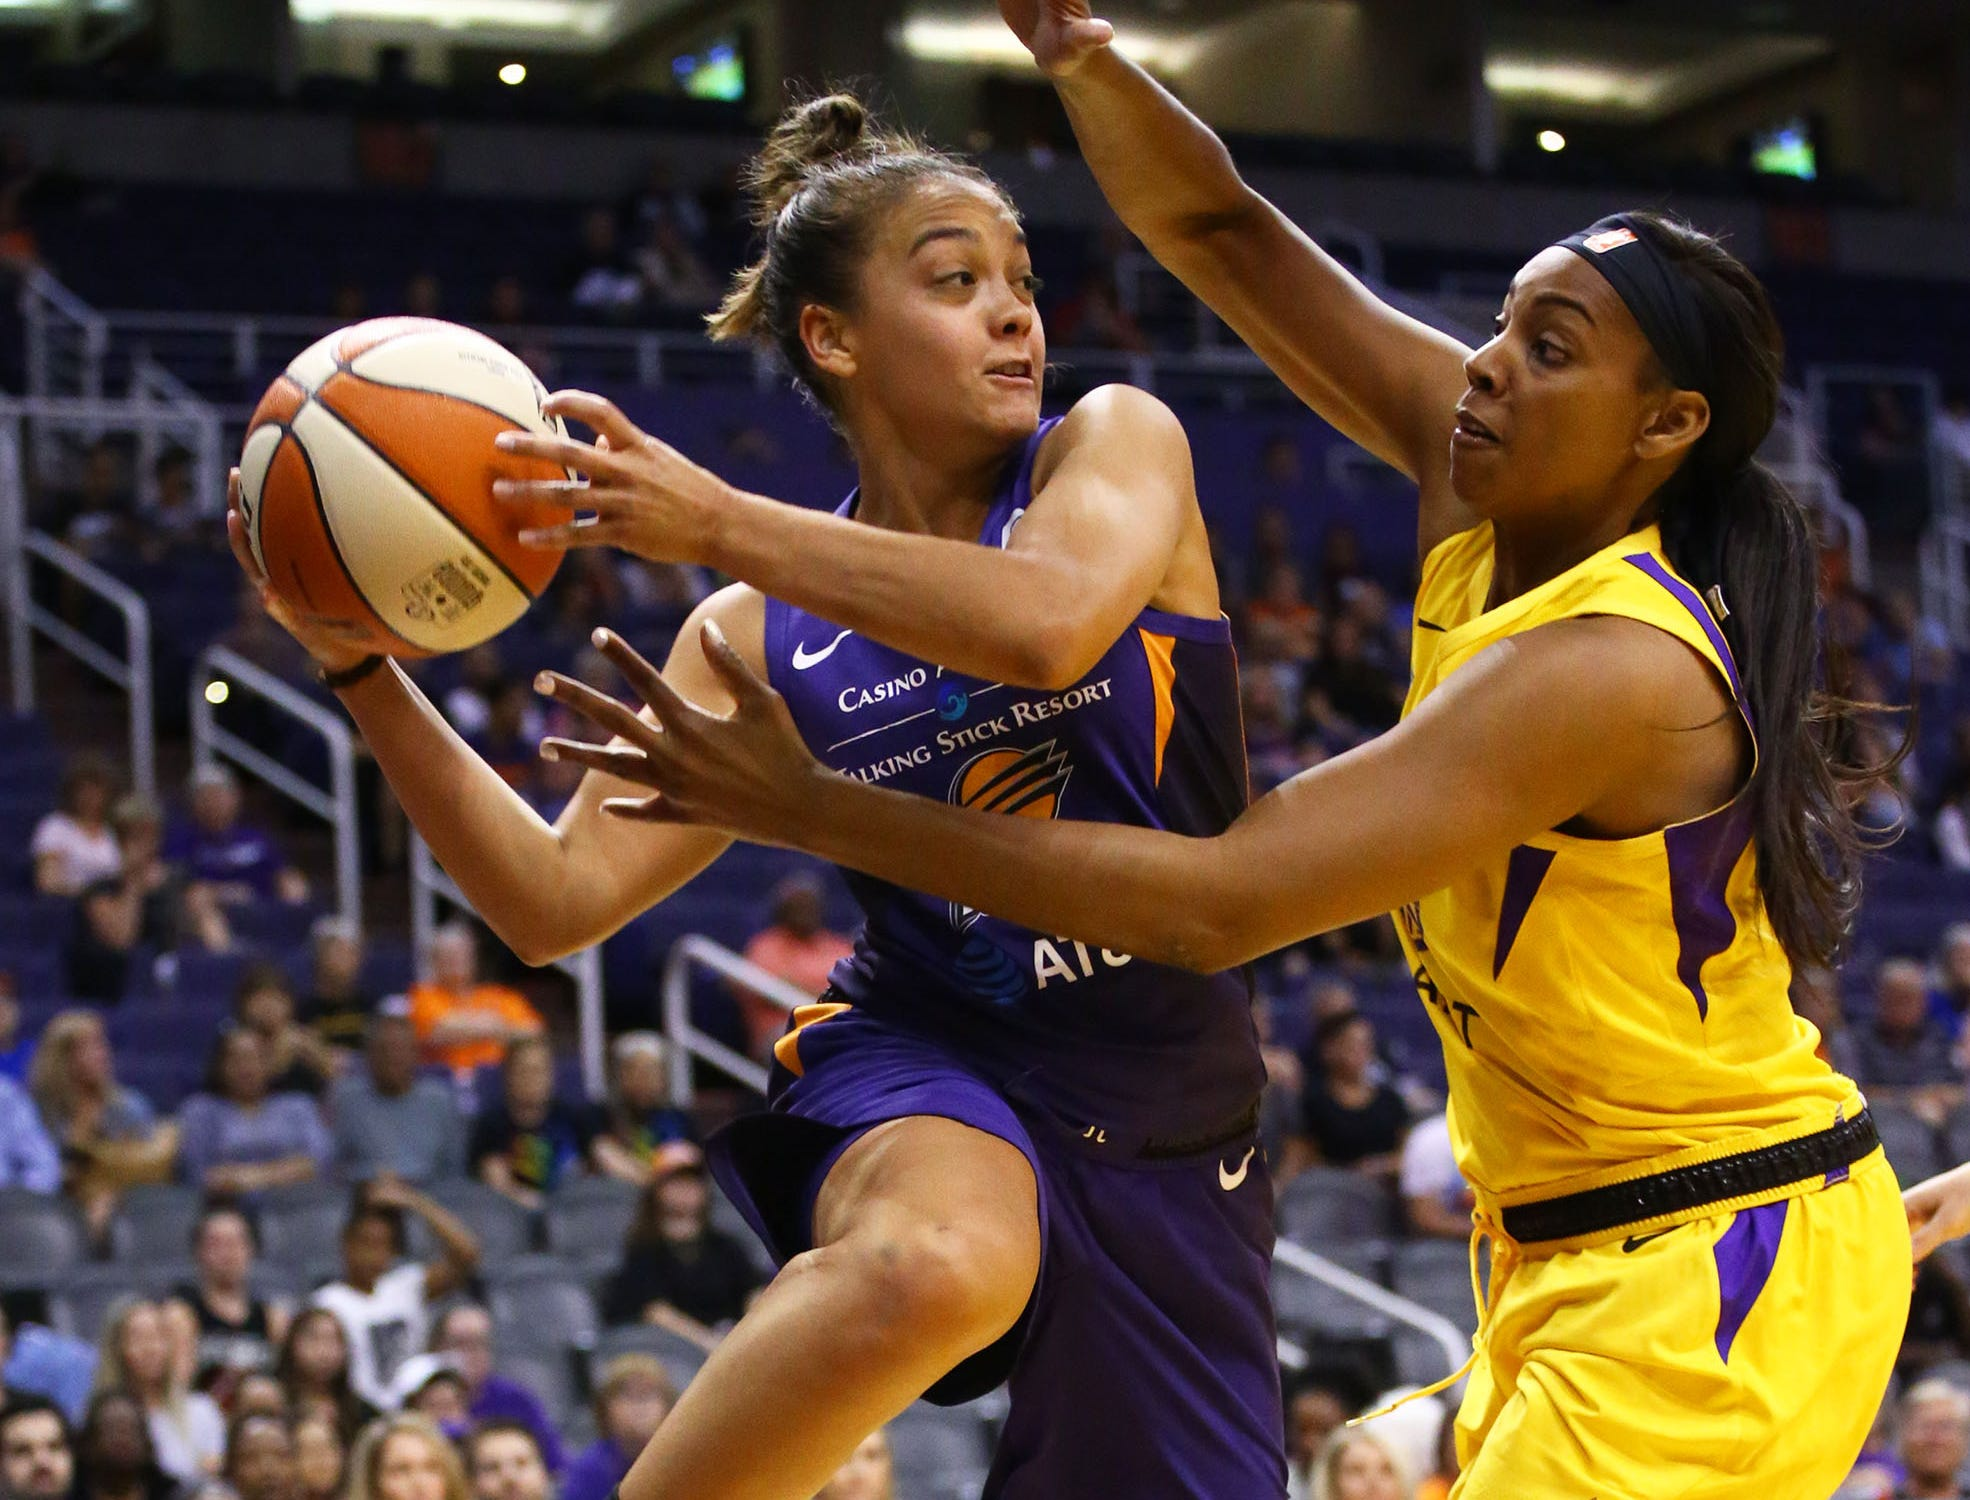 Phoenix Mercury guard Leilani Mitchell passes the ball against the Los Angeles Sparks in the first half during a preseason game on May 11, 2019 in Phoenix, Ariz.